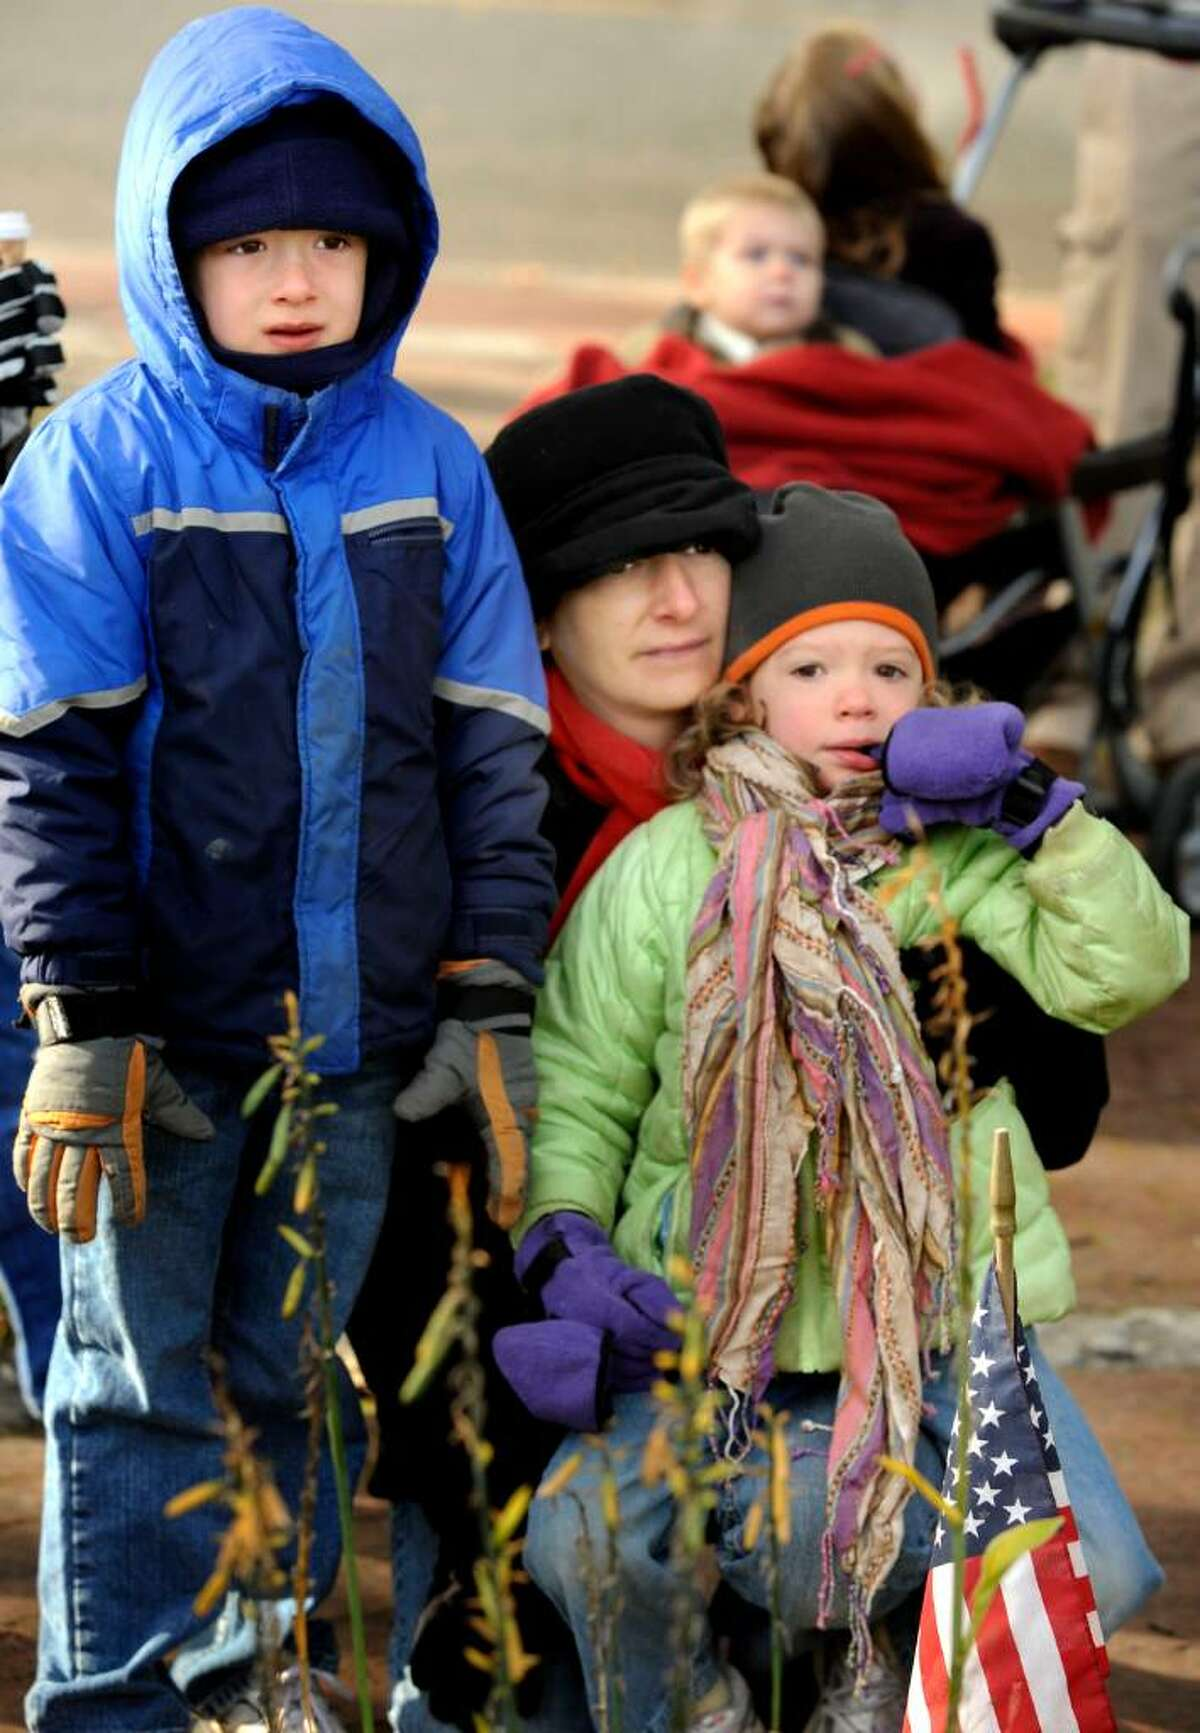 Mason Baliko, 6, his mother, Allison Valentino, and sister, Madeleine Baliko, 4, of Bethel, listen to speeches at P.T.Barnum Square during the Bethel Columbus Day Parade on Monday, Oct.12,2009.